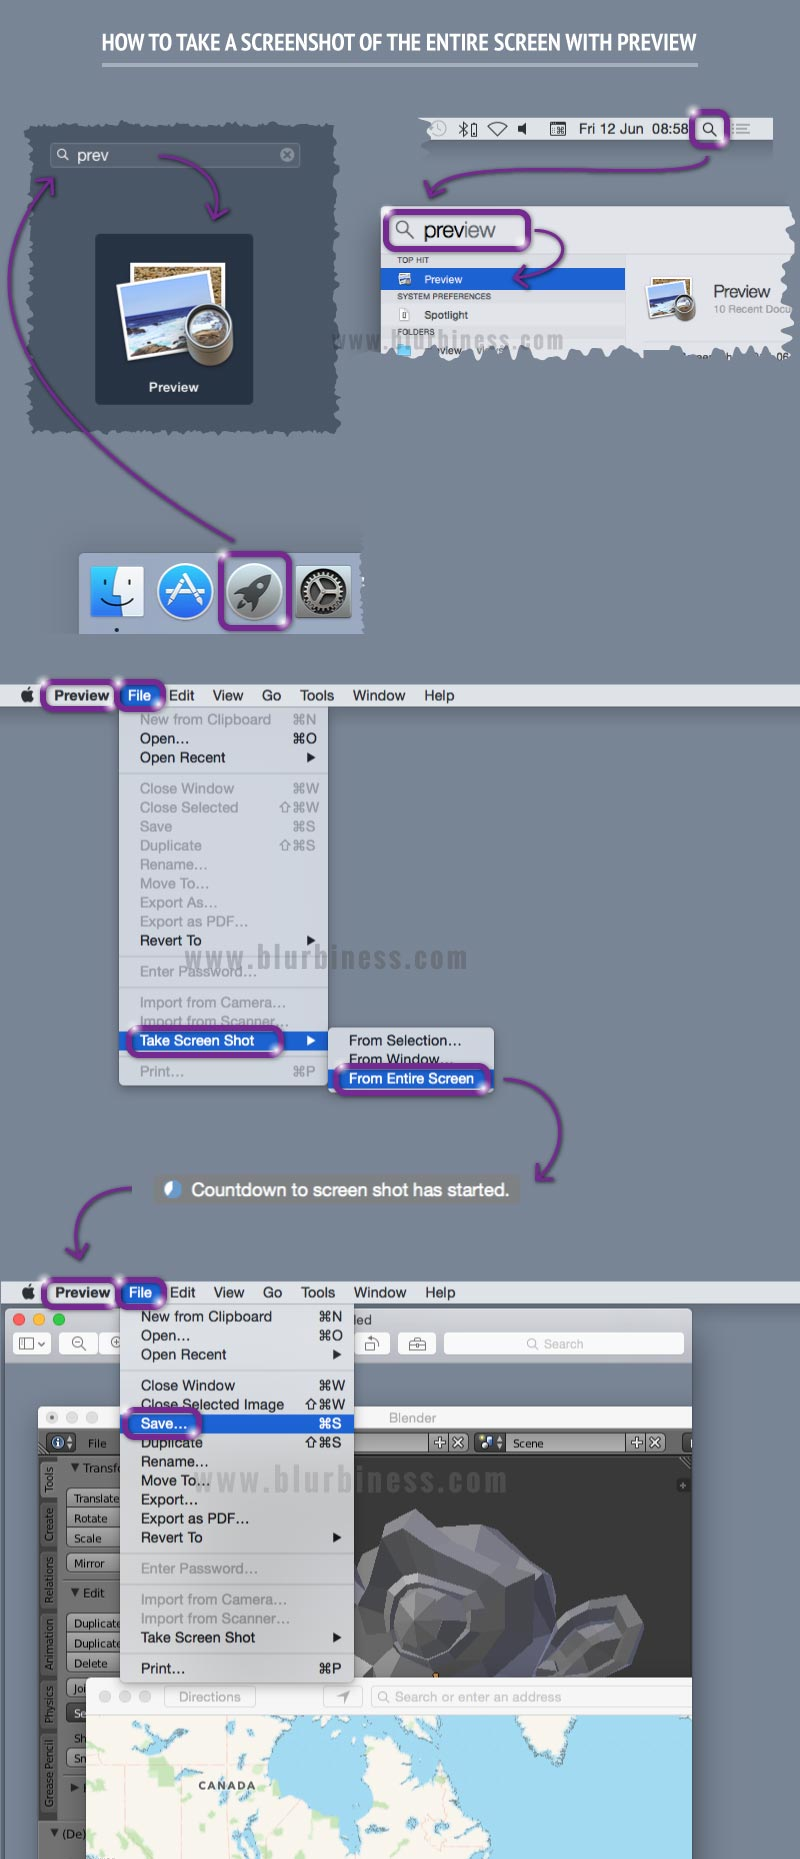 How to take a screenshot of the entire screen with Preview in Mac